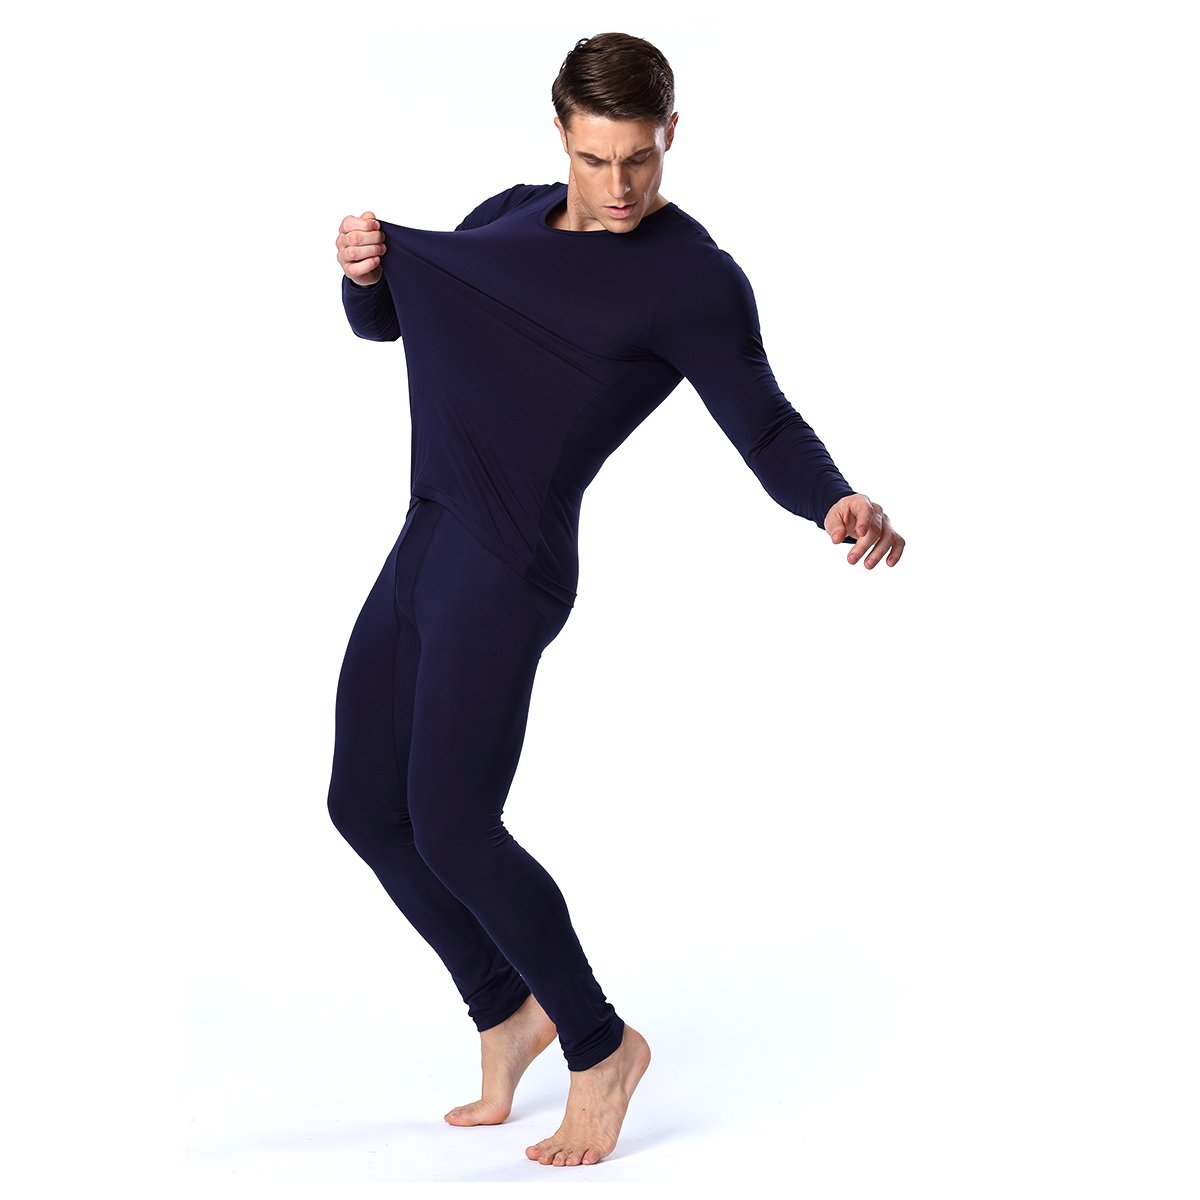 INCART Thermal Underwear Set, Trade; Men's Long Sleeve Top & Long Johns Set Modal Breathable Fabrics|Slim Design-Warmth & Comfort For Winter QSD01